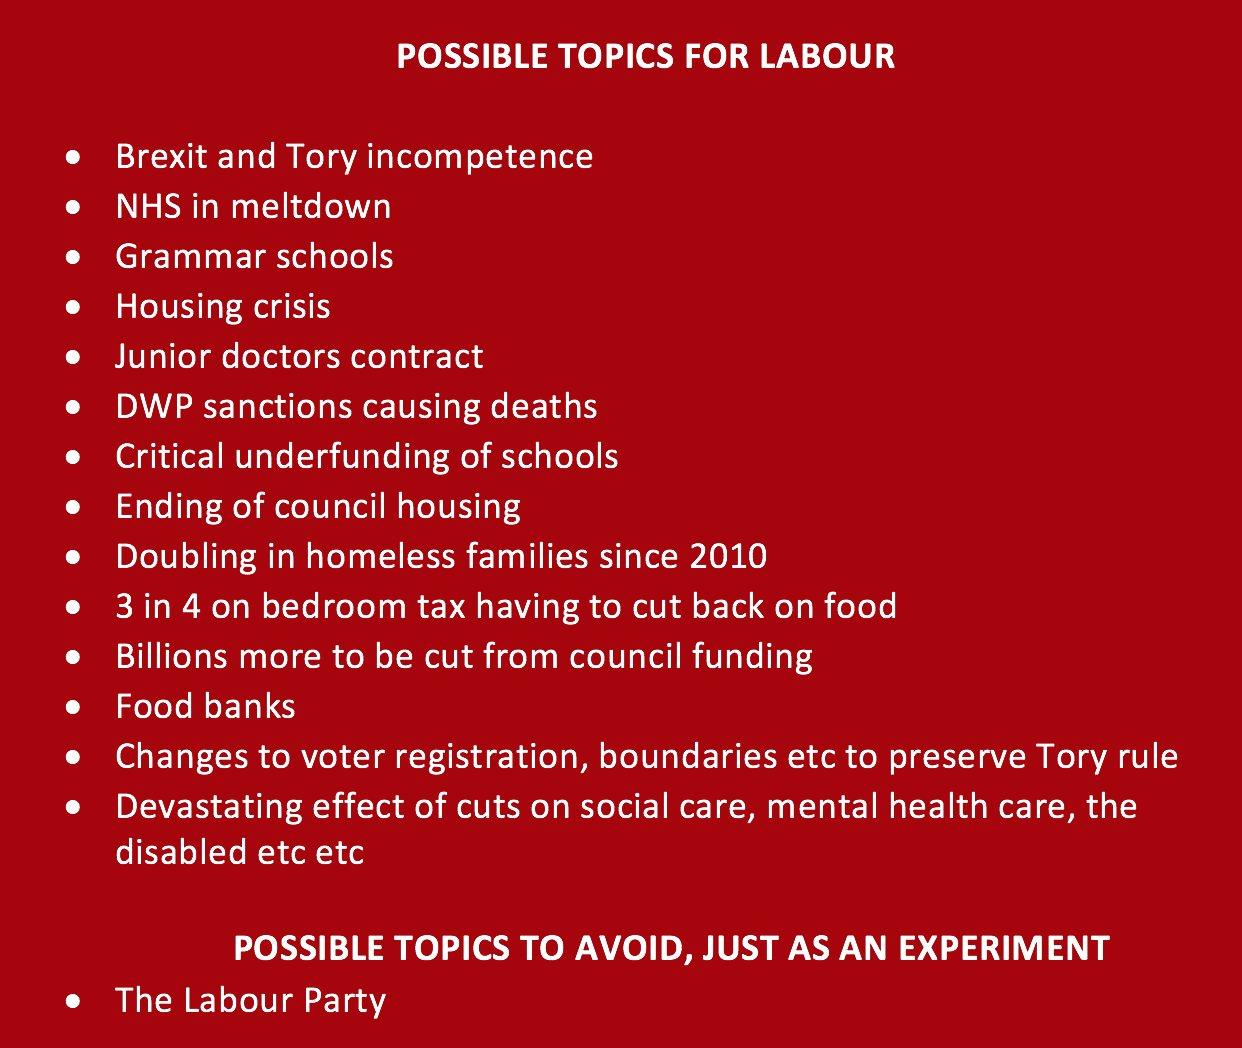 Now the #LabourLeadership election is over, here's a handy guide of possible topics for the Labour Party. #Lab16 https://t.co/8Xtn4IuXHb